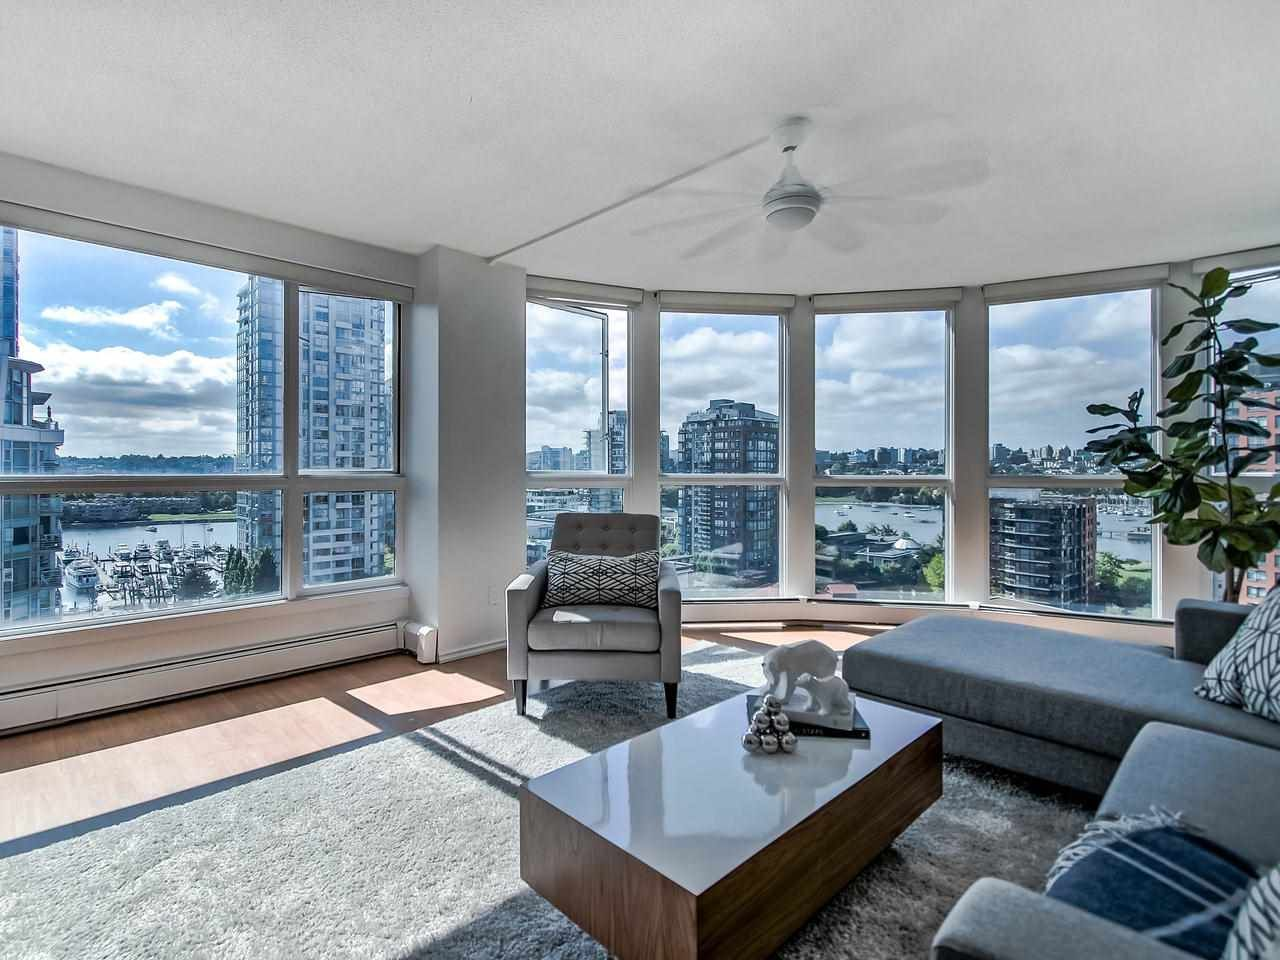 Main Photo: 1305 283 DAVIE STREET in Vancouver: Yaletown Condo for sale (Vancouver West)  : MLS®# R2491218